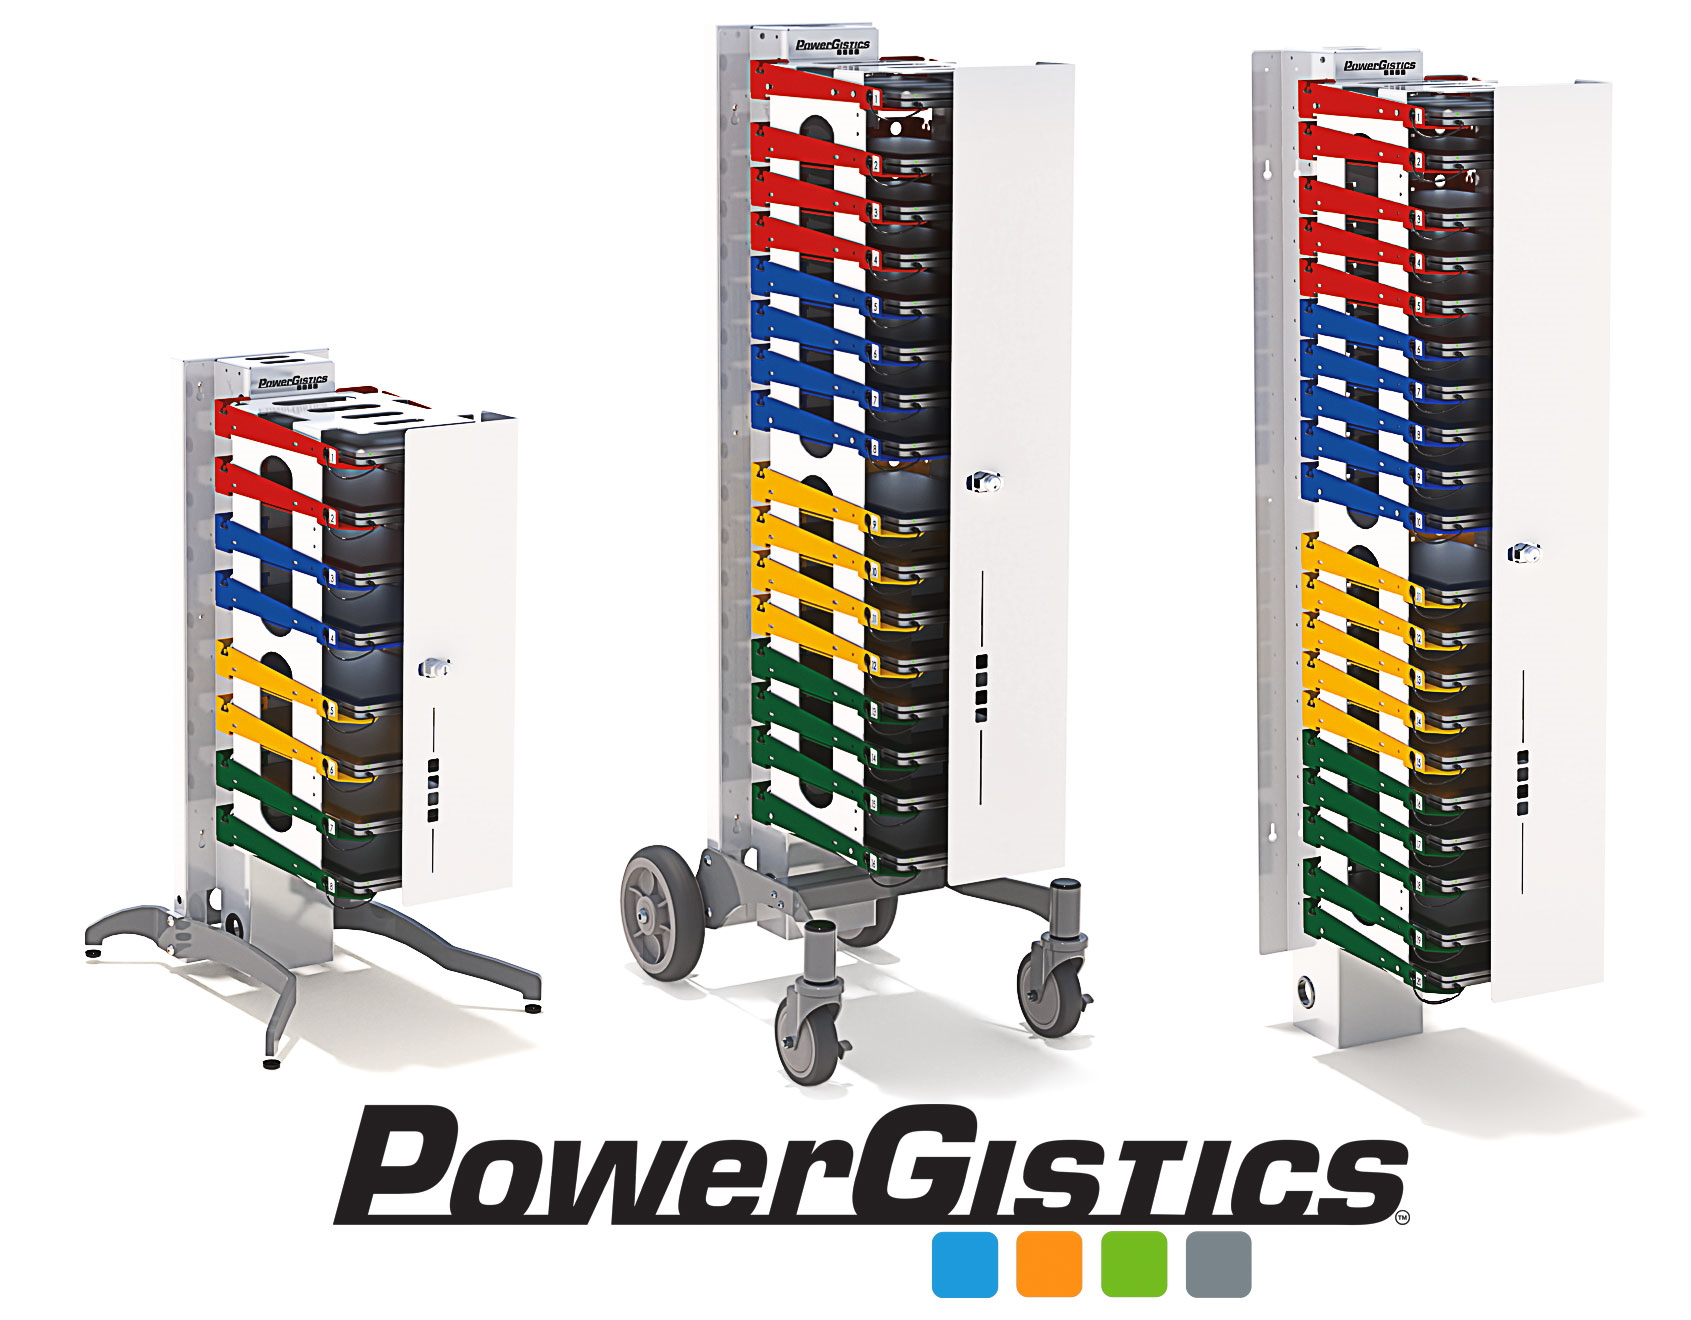 powerlogistics